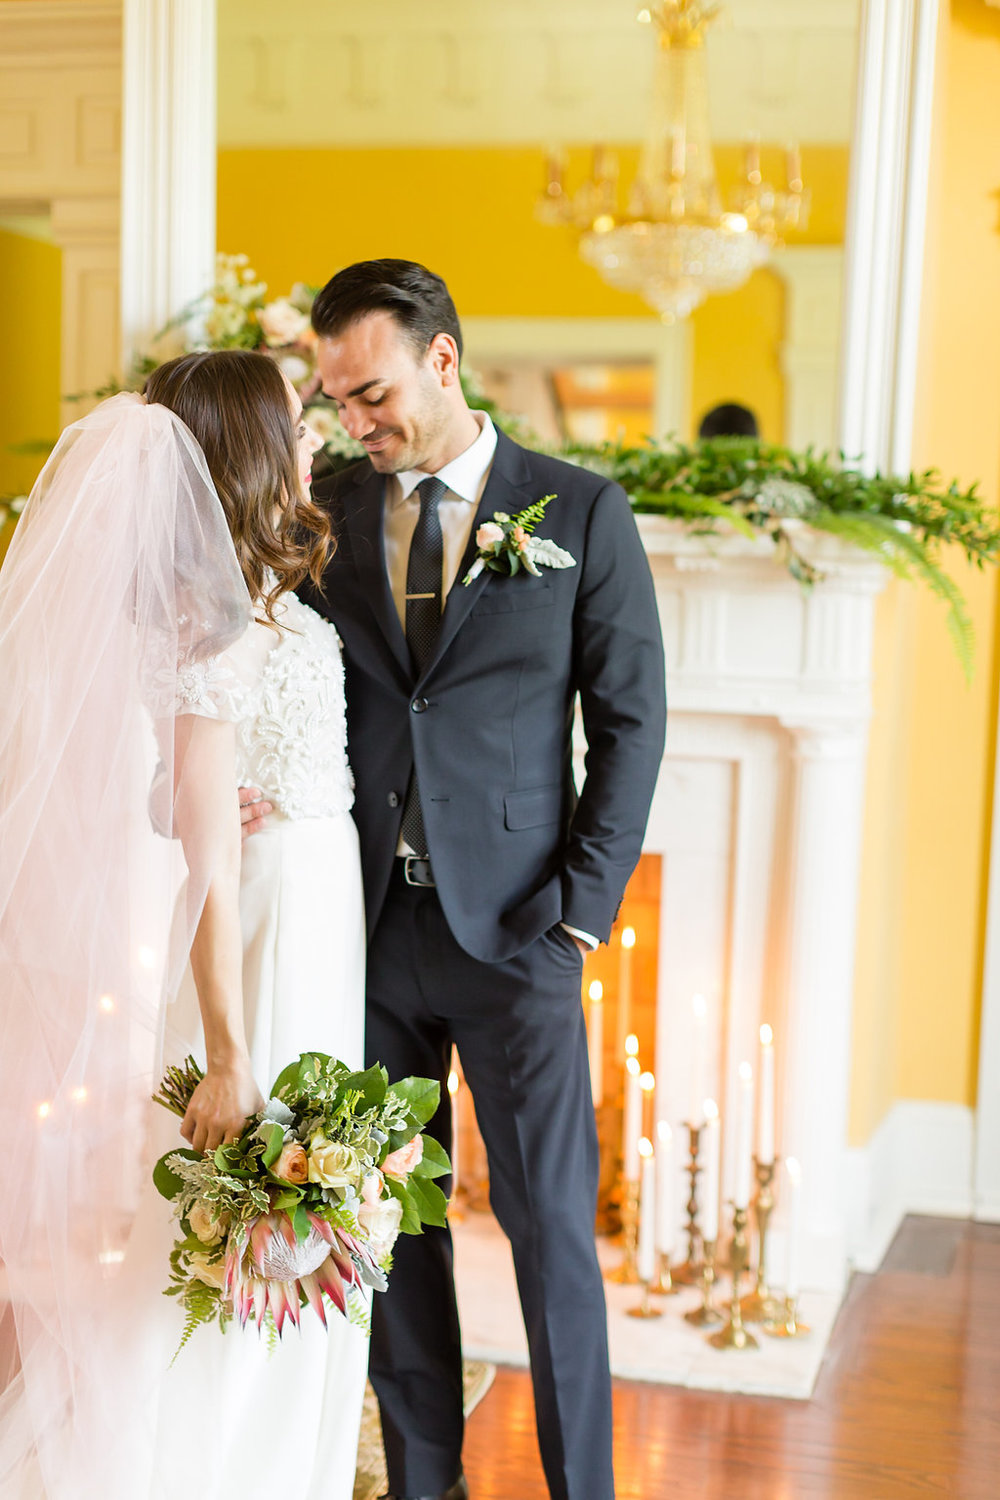 Locklane Weddings & Events + Greenery, Pink, Yellow Wedding Inspiration + GranDale Manor + Caley King Newberry